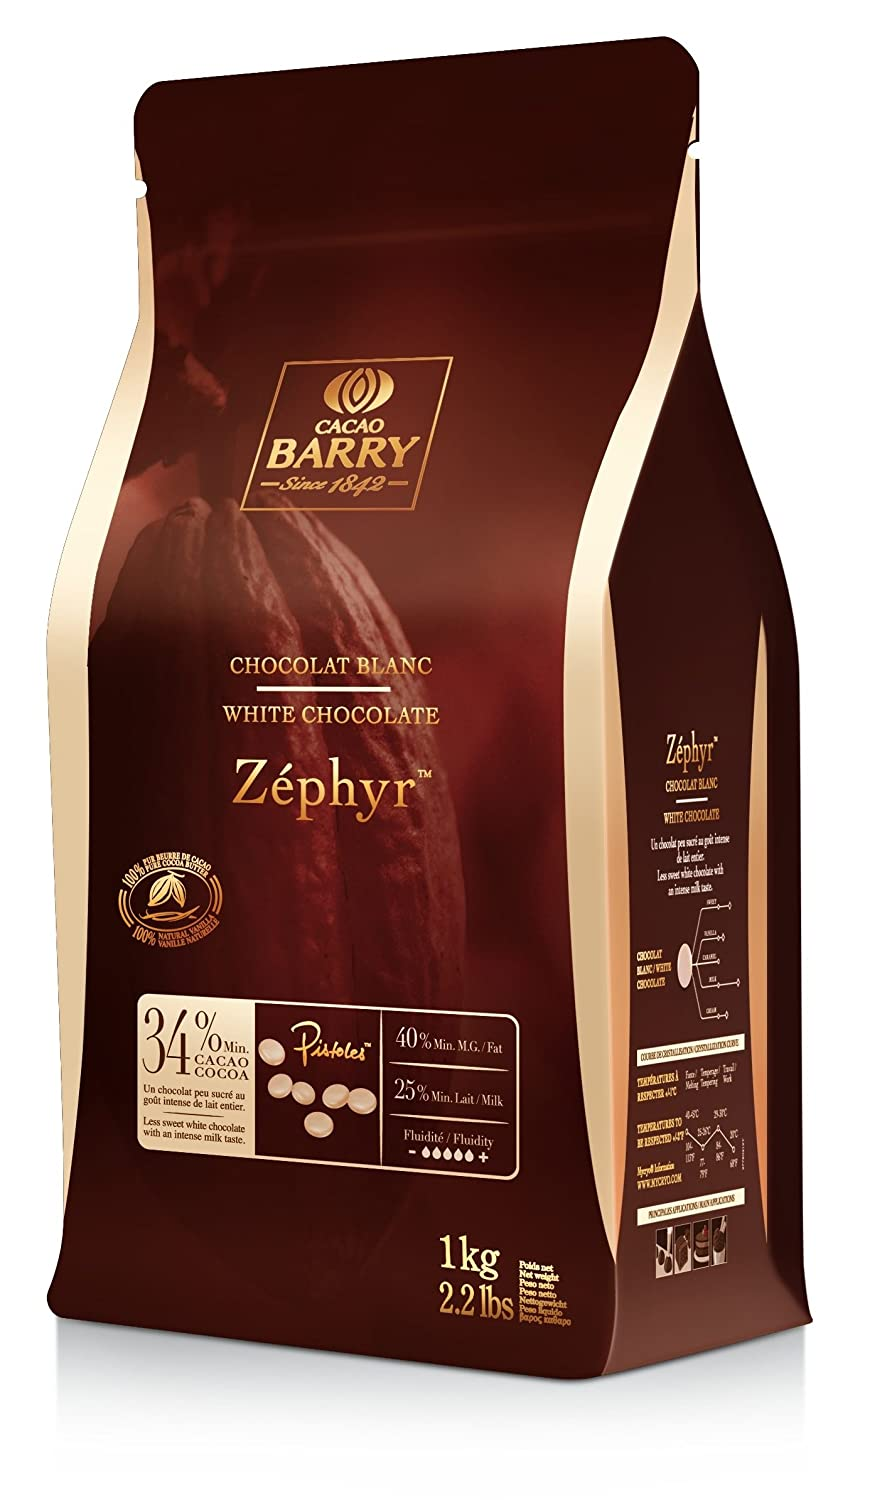 Cacao Barry kg 34% Zephyr Easimelt chips de chocolate blanco: Amazon.es: Alimentación y bebidas